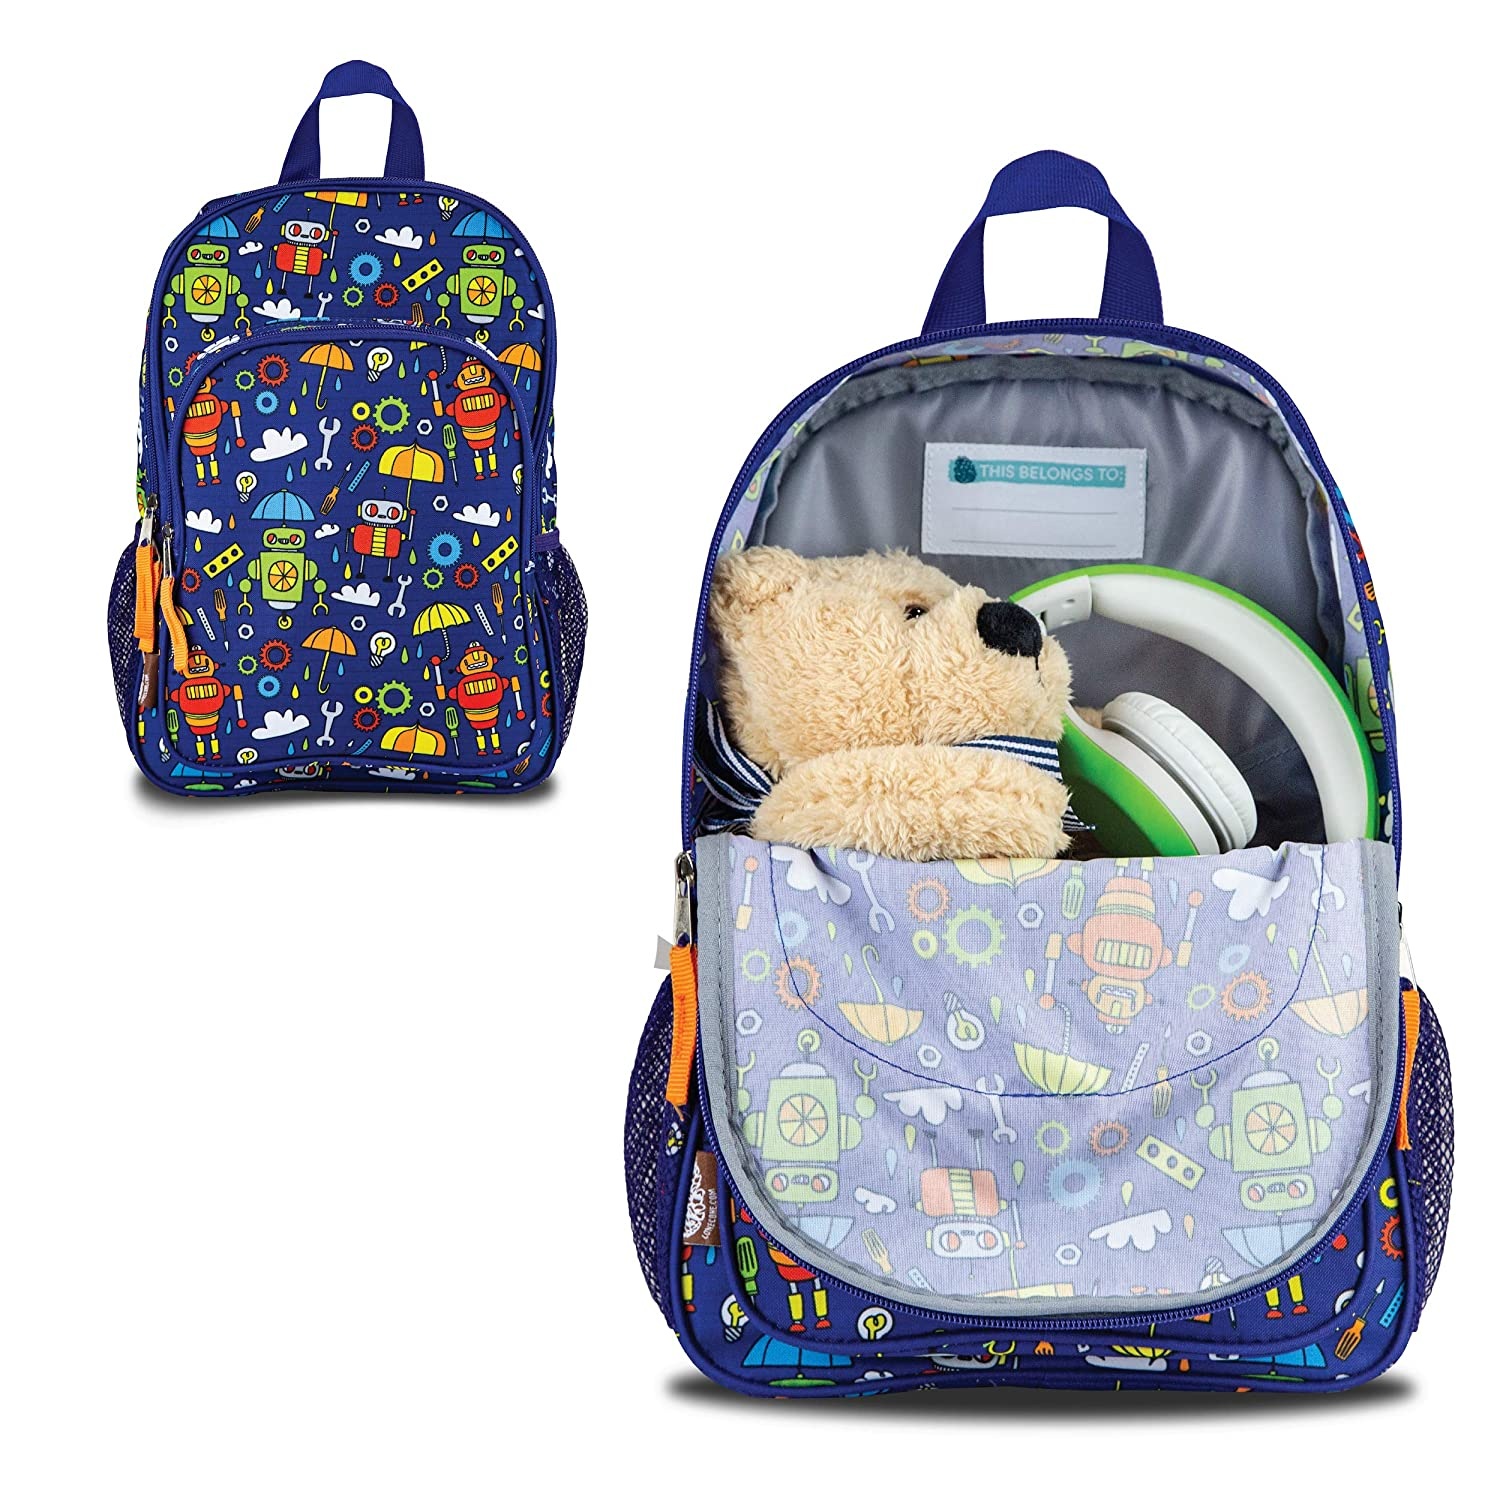 e4b4d6f08357 ... Canvas Preschool Backpack - School Bag for Little Boys and Girls LONE  CONE larger image